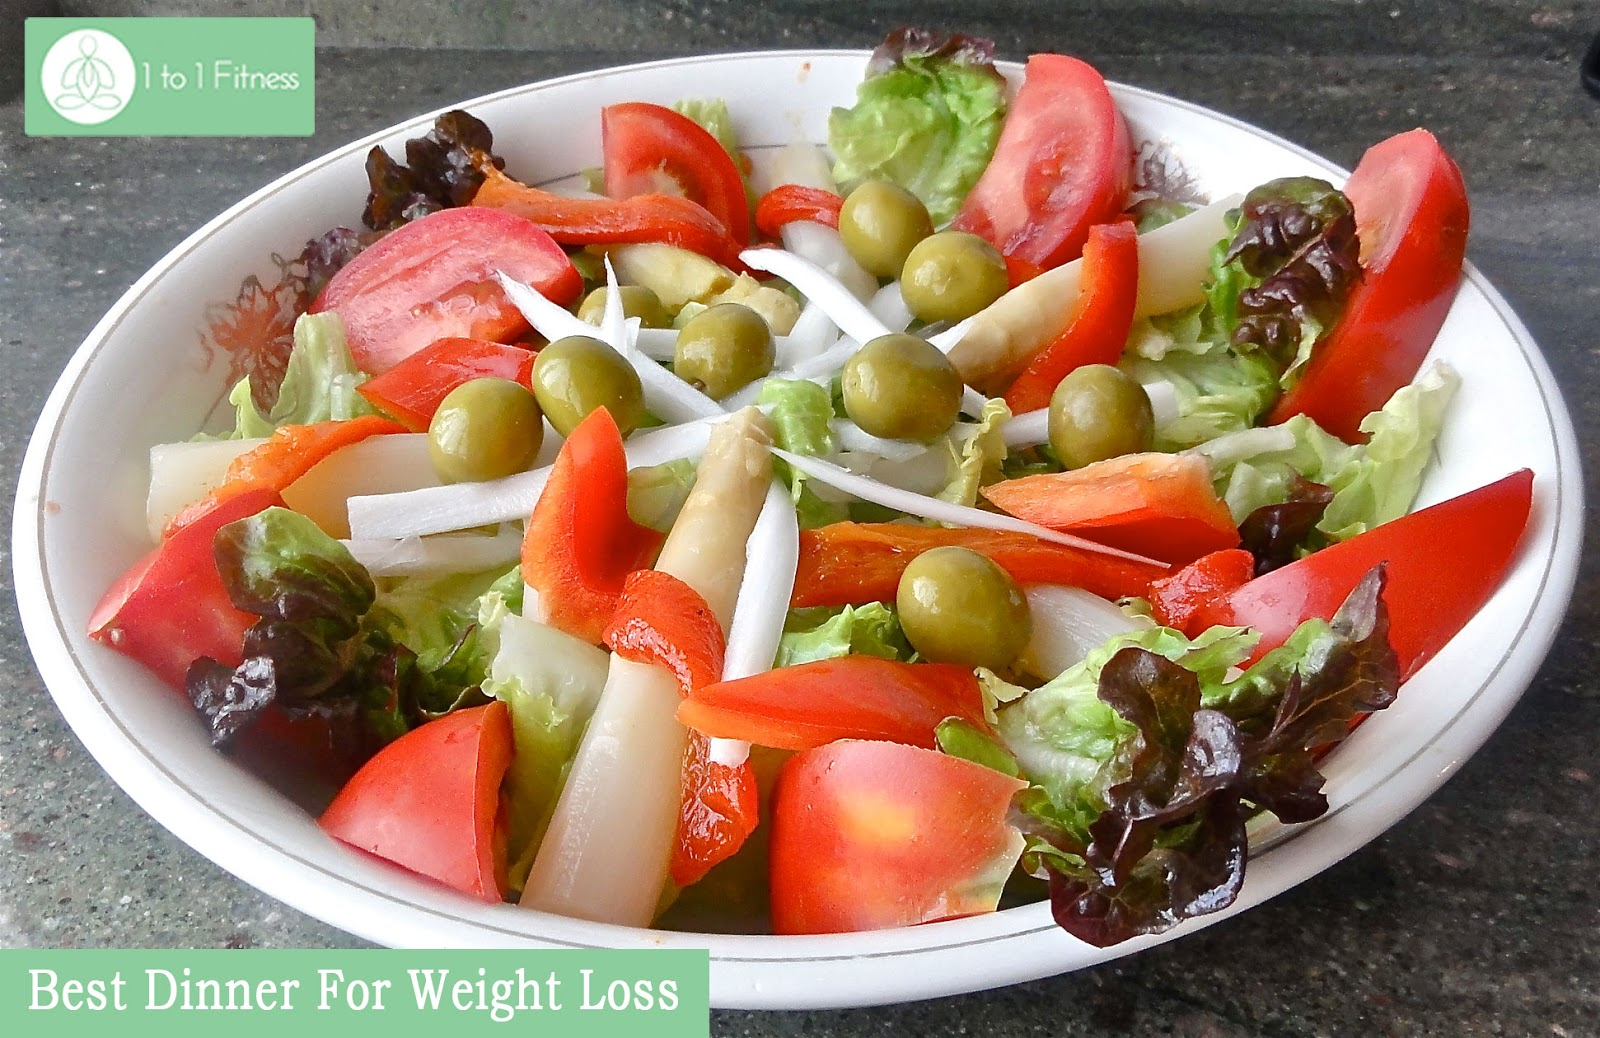 fruit salad recipes what fruit is healthy for weight loss